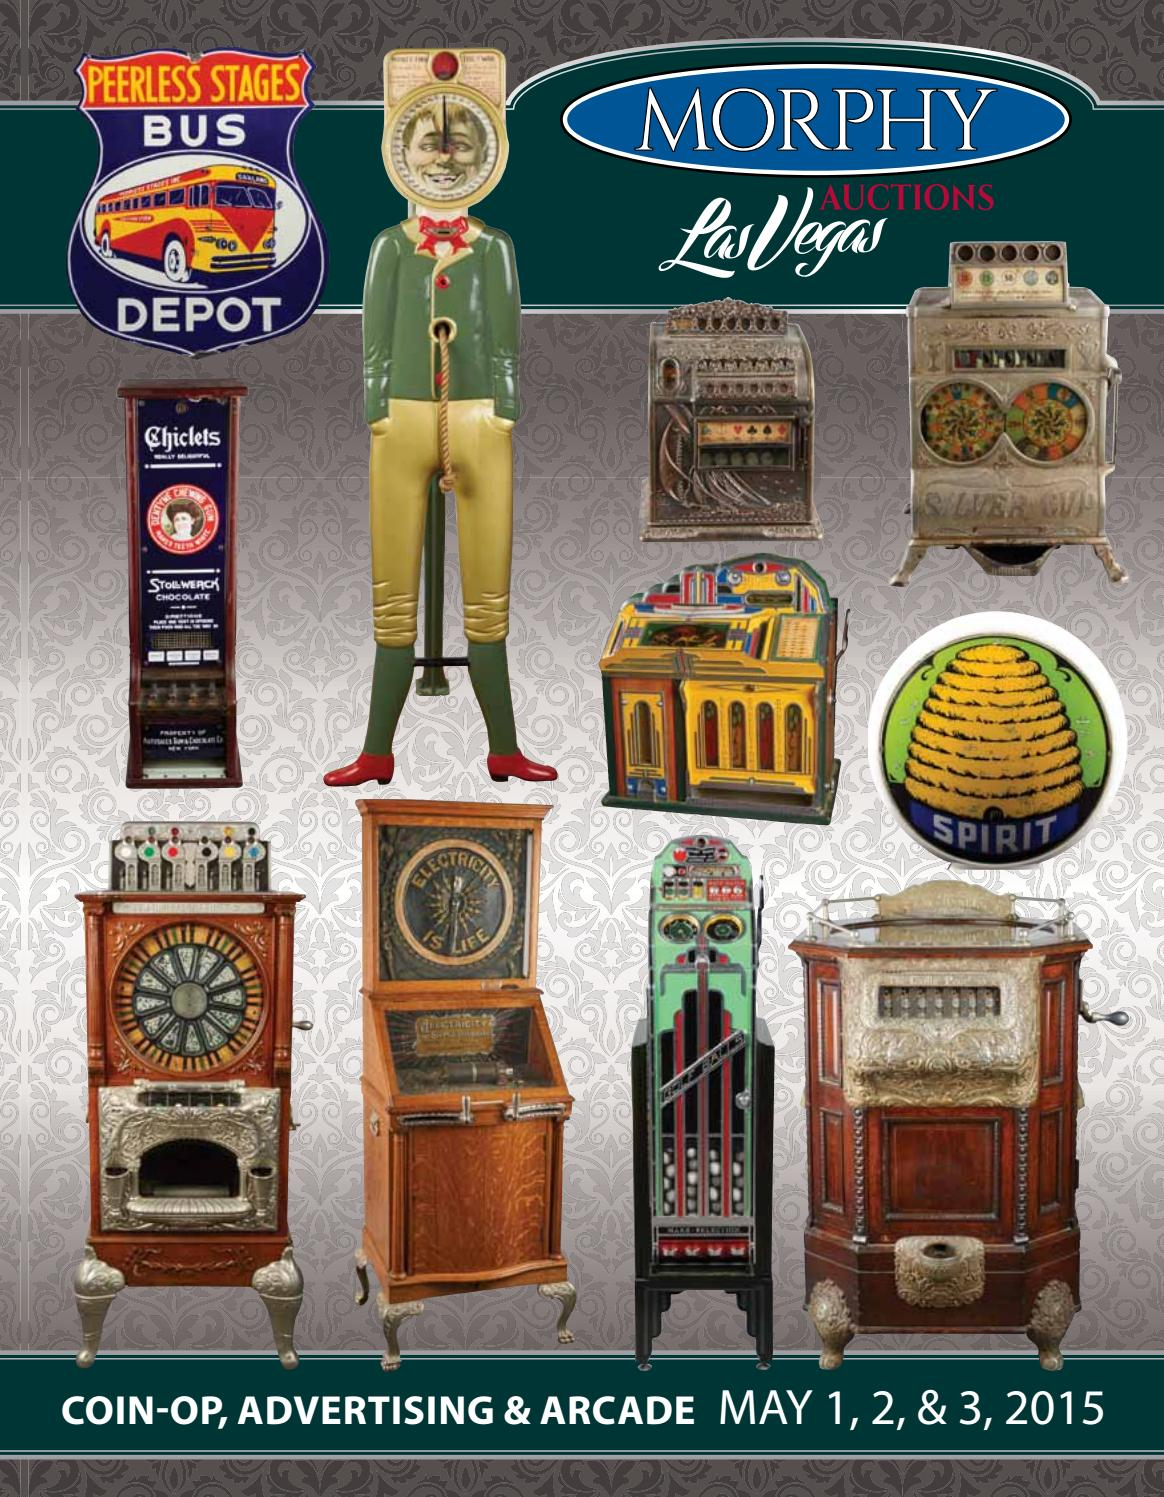 1a35621bc 2015 May 1-3 Coin-Op, Advertising, & Arcade by Morphy Auctions - issuu